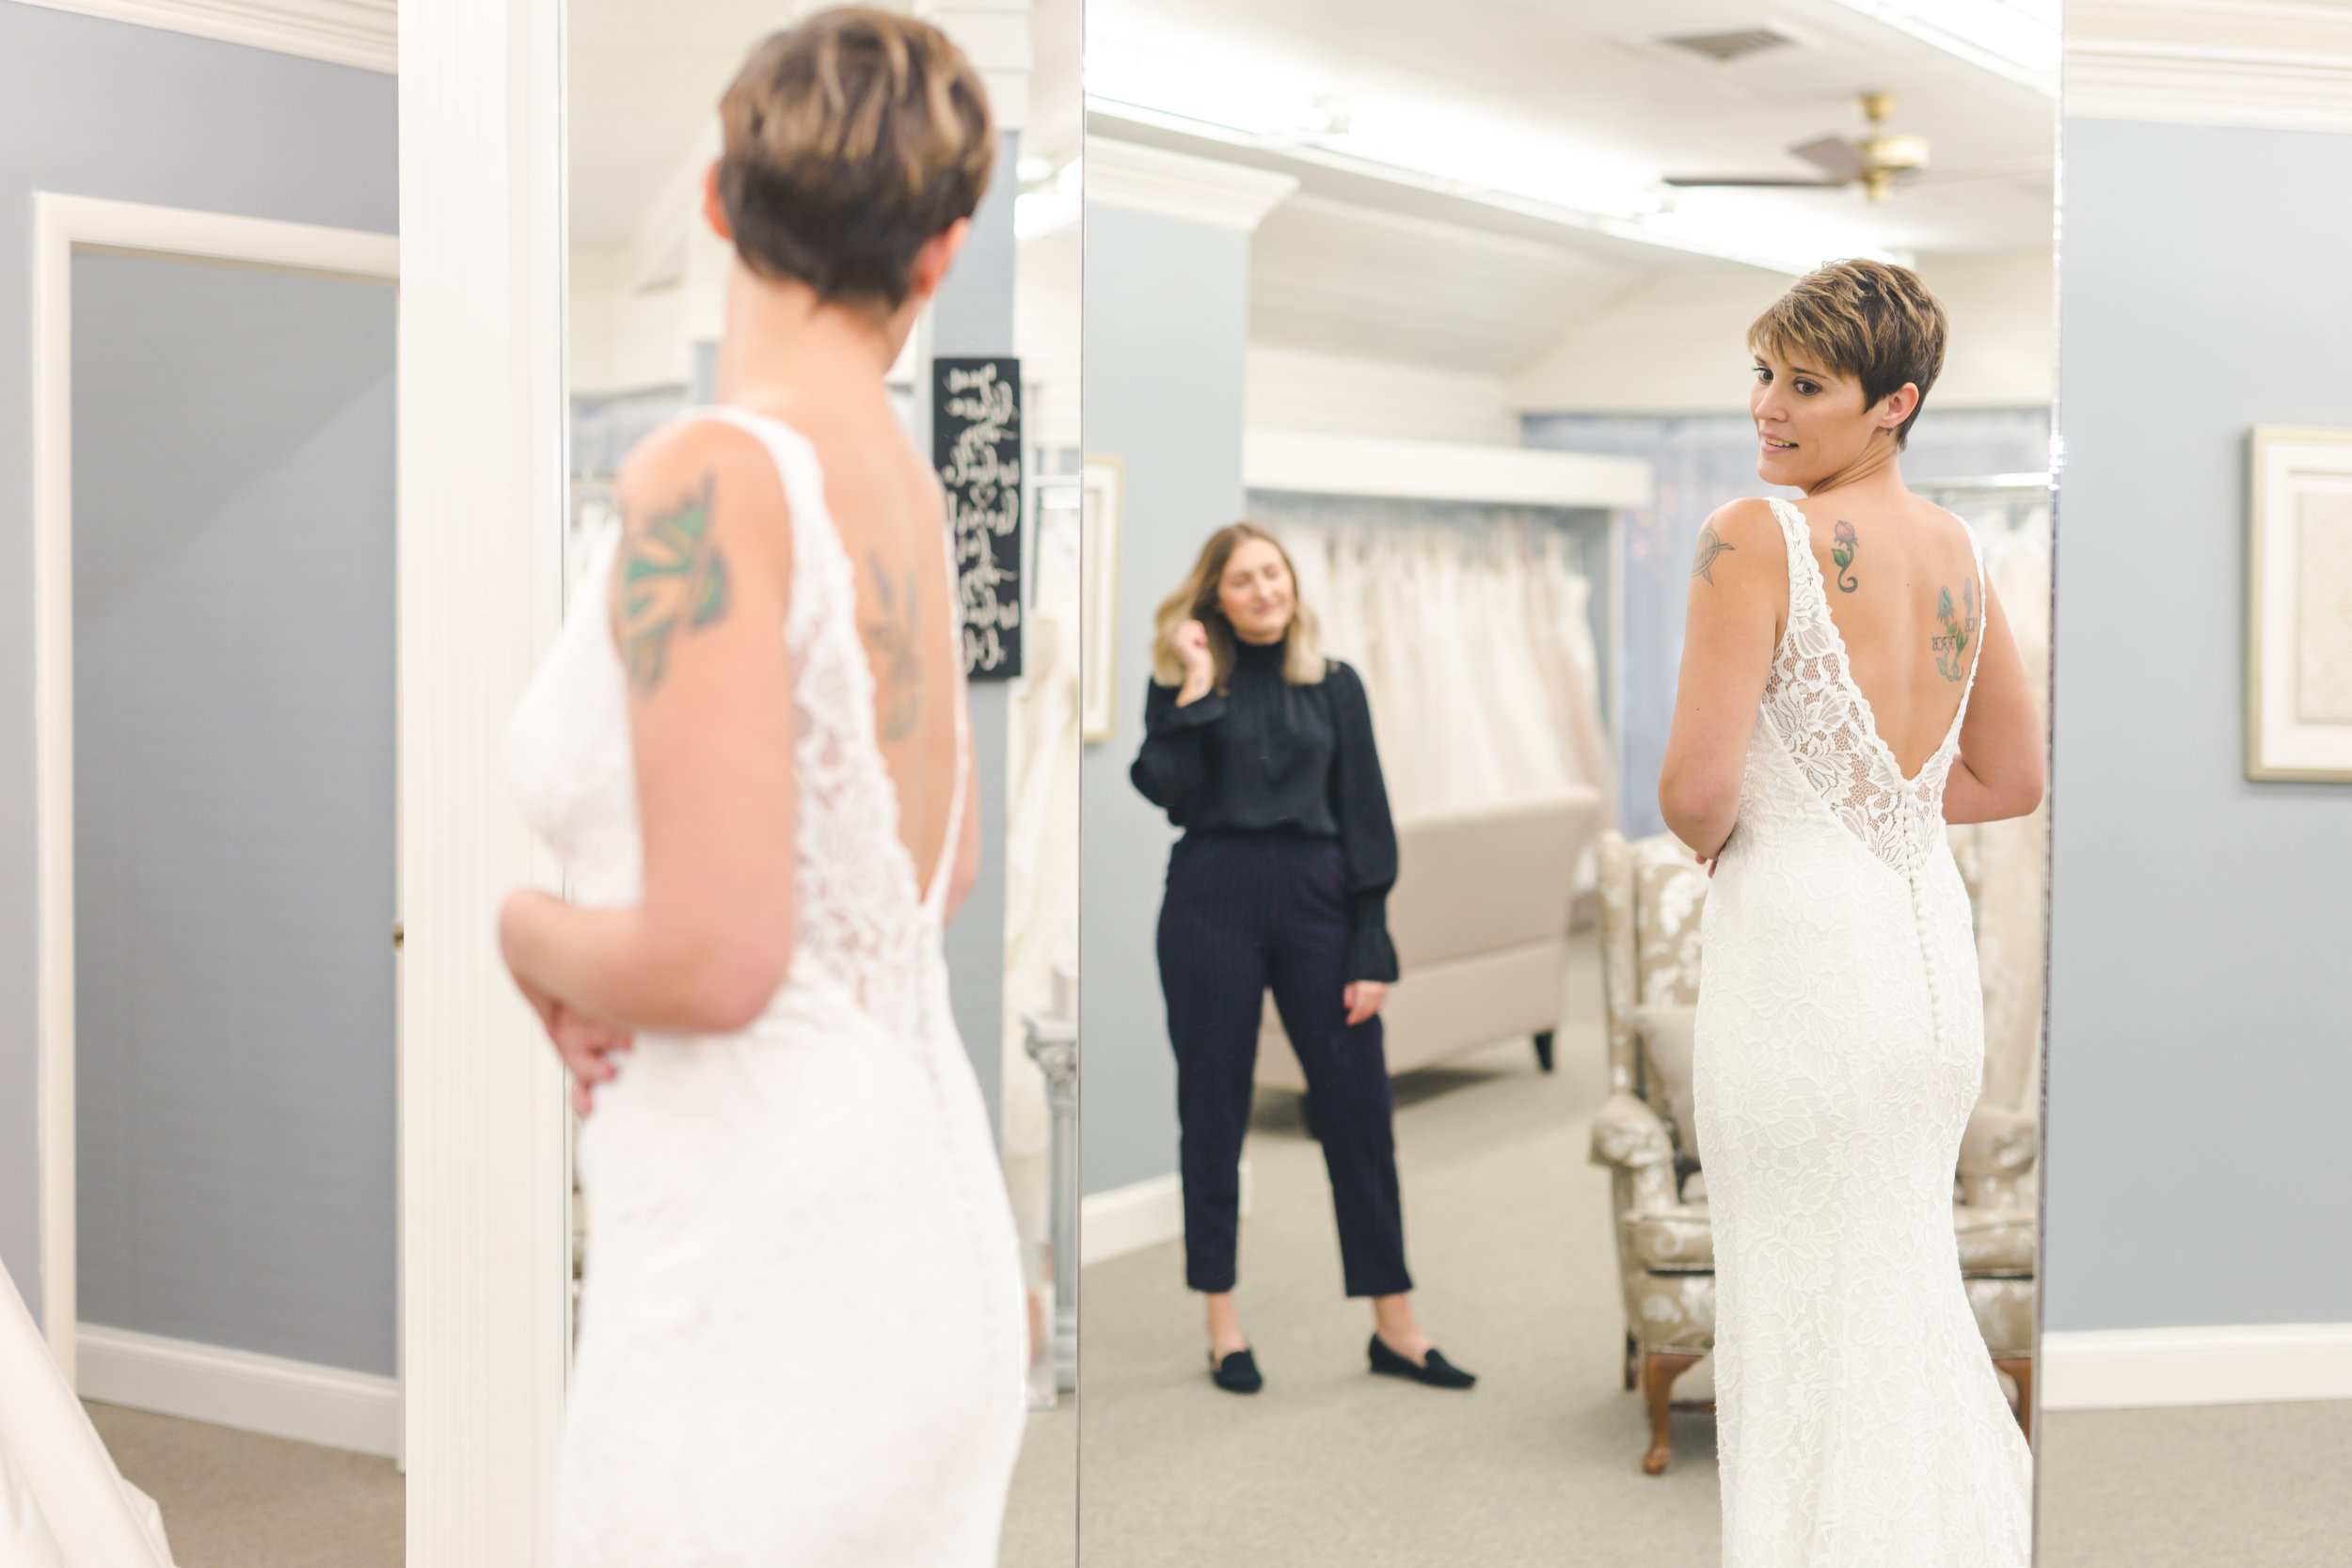 manchester - Experience, Heart to Heart Bridal in Manchester. With over 350 wedding dresses in stock you are bound to find the one! We can't wait to help you find your dream wedding dress.